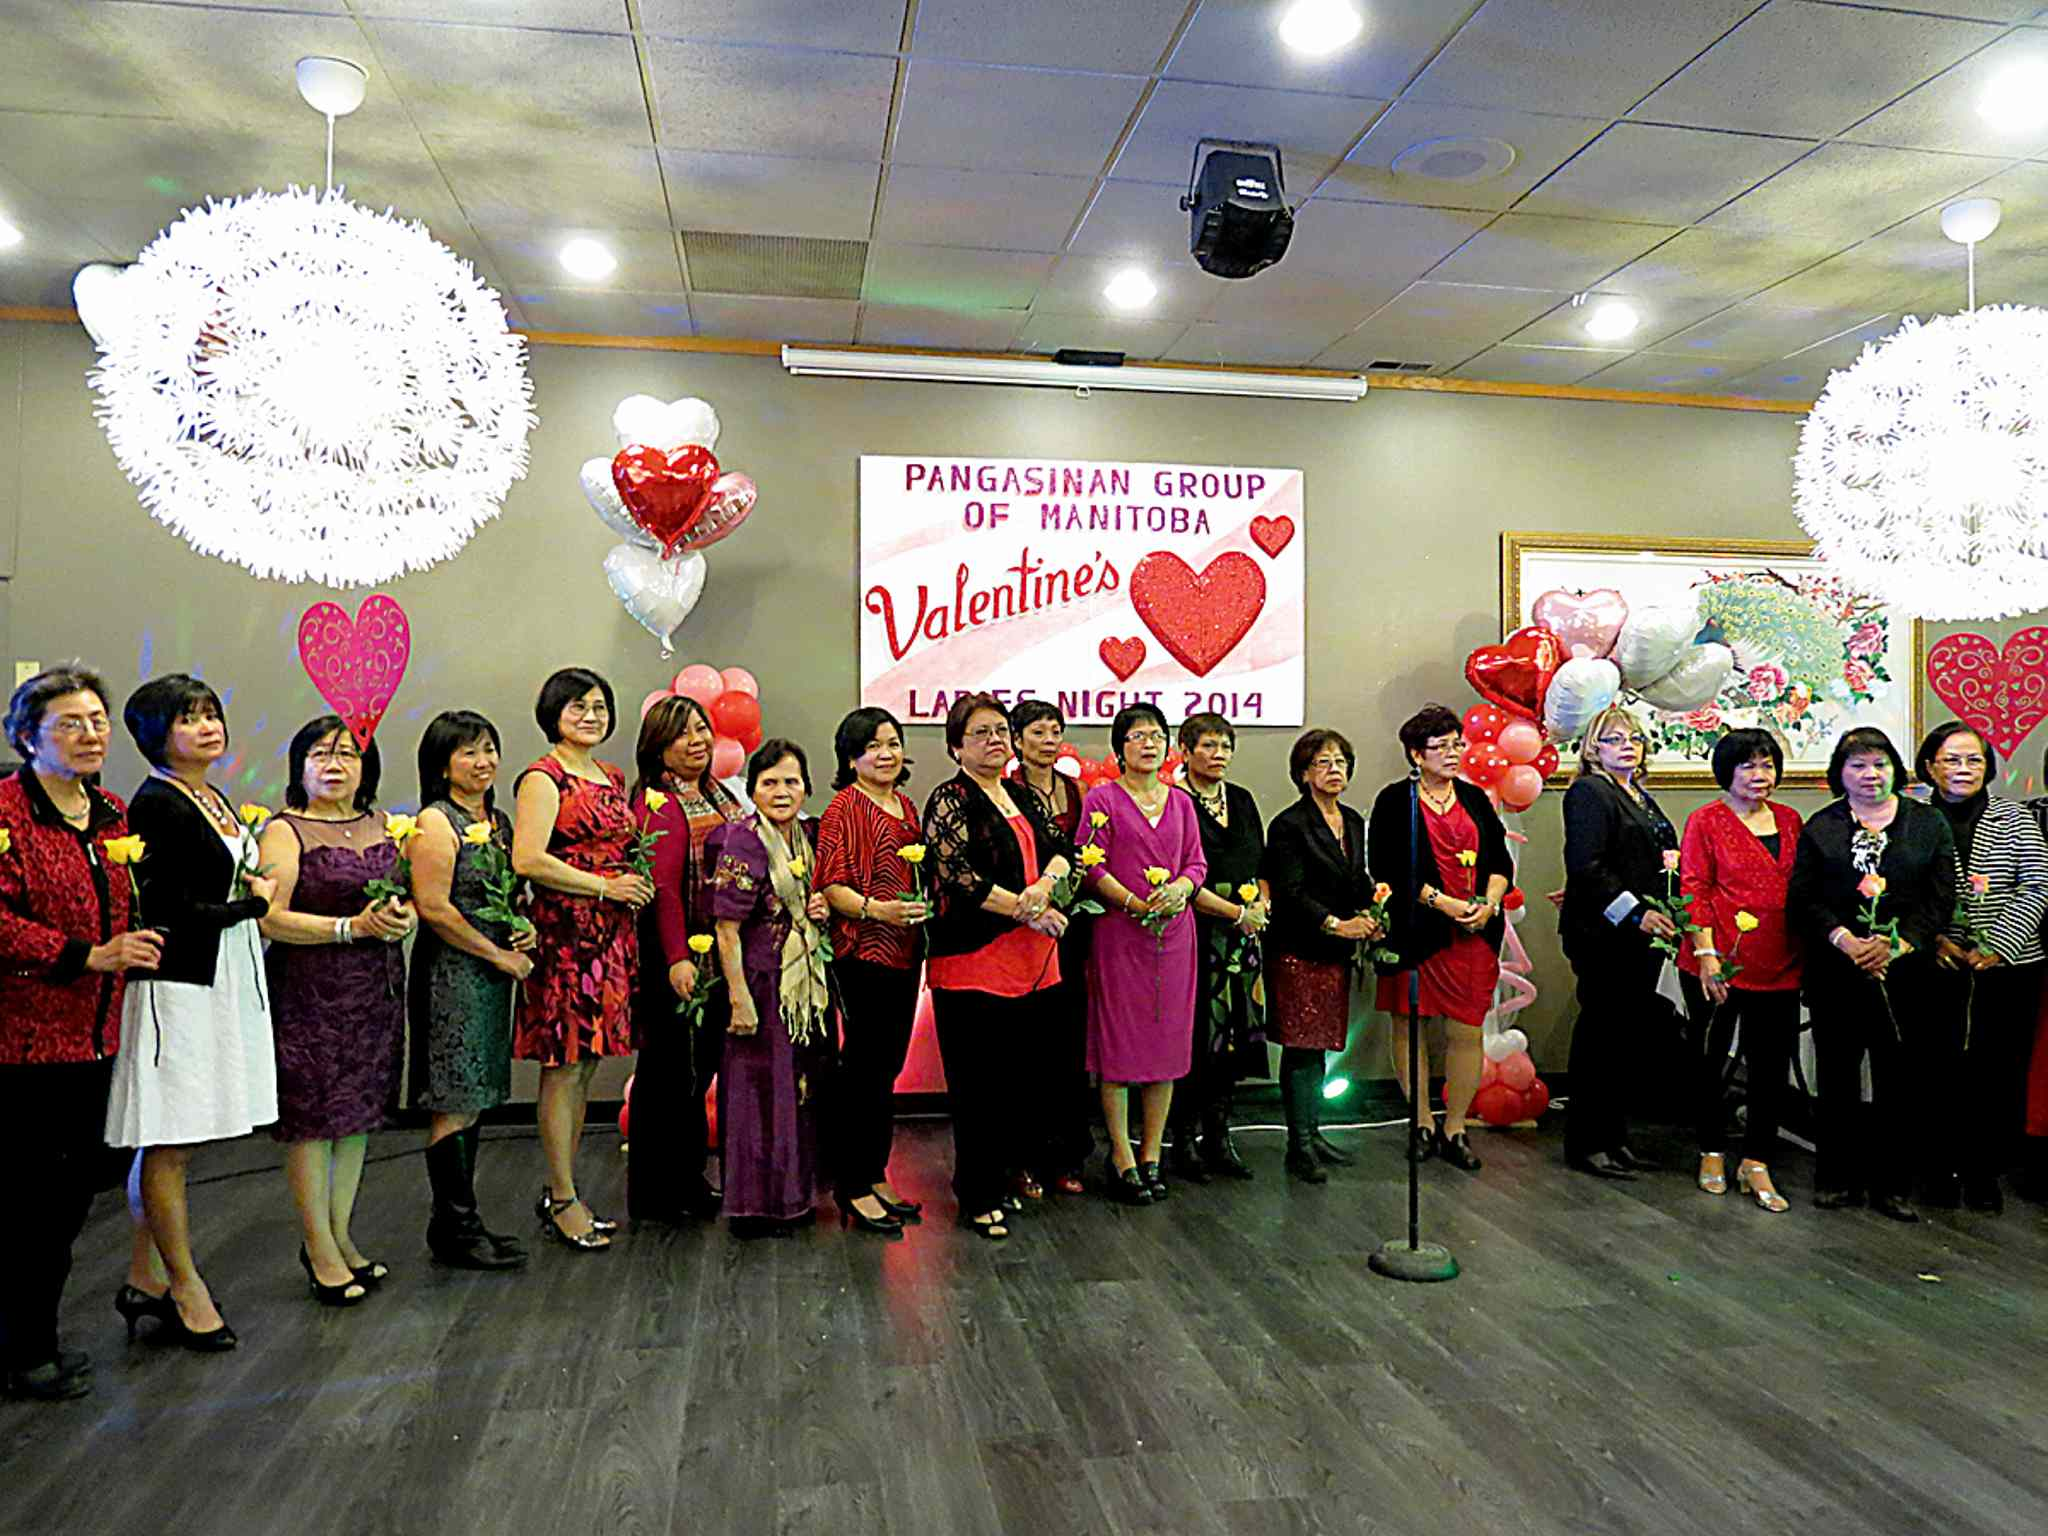 Ladies received roses from the Pangasinan Group of Manitoba during the flower presentation ceremony at the group's Valentine's Day celebration.